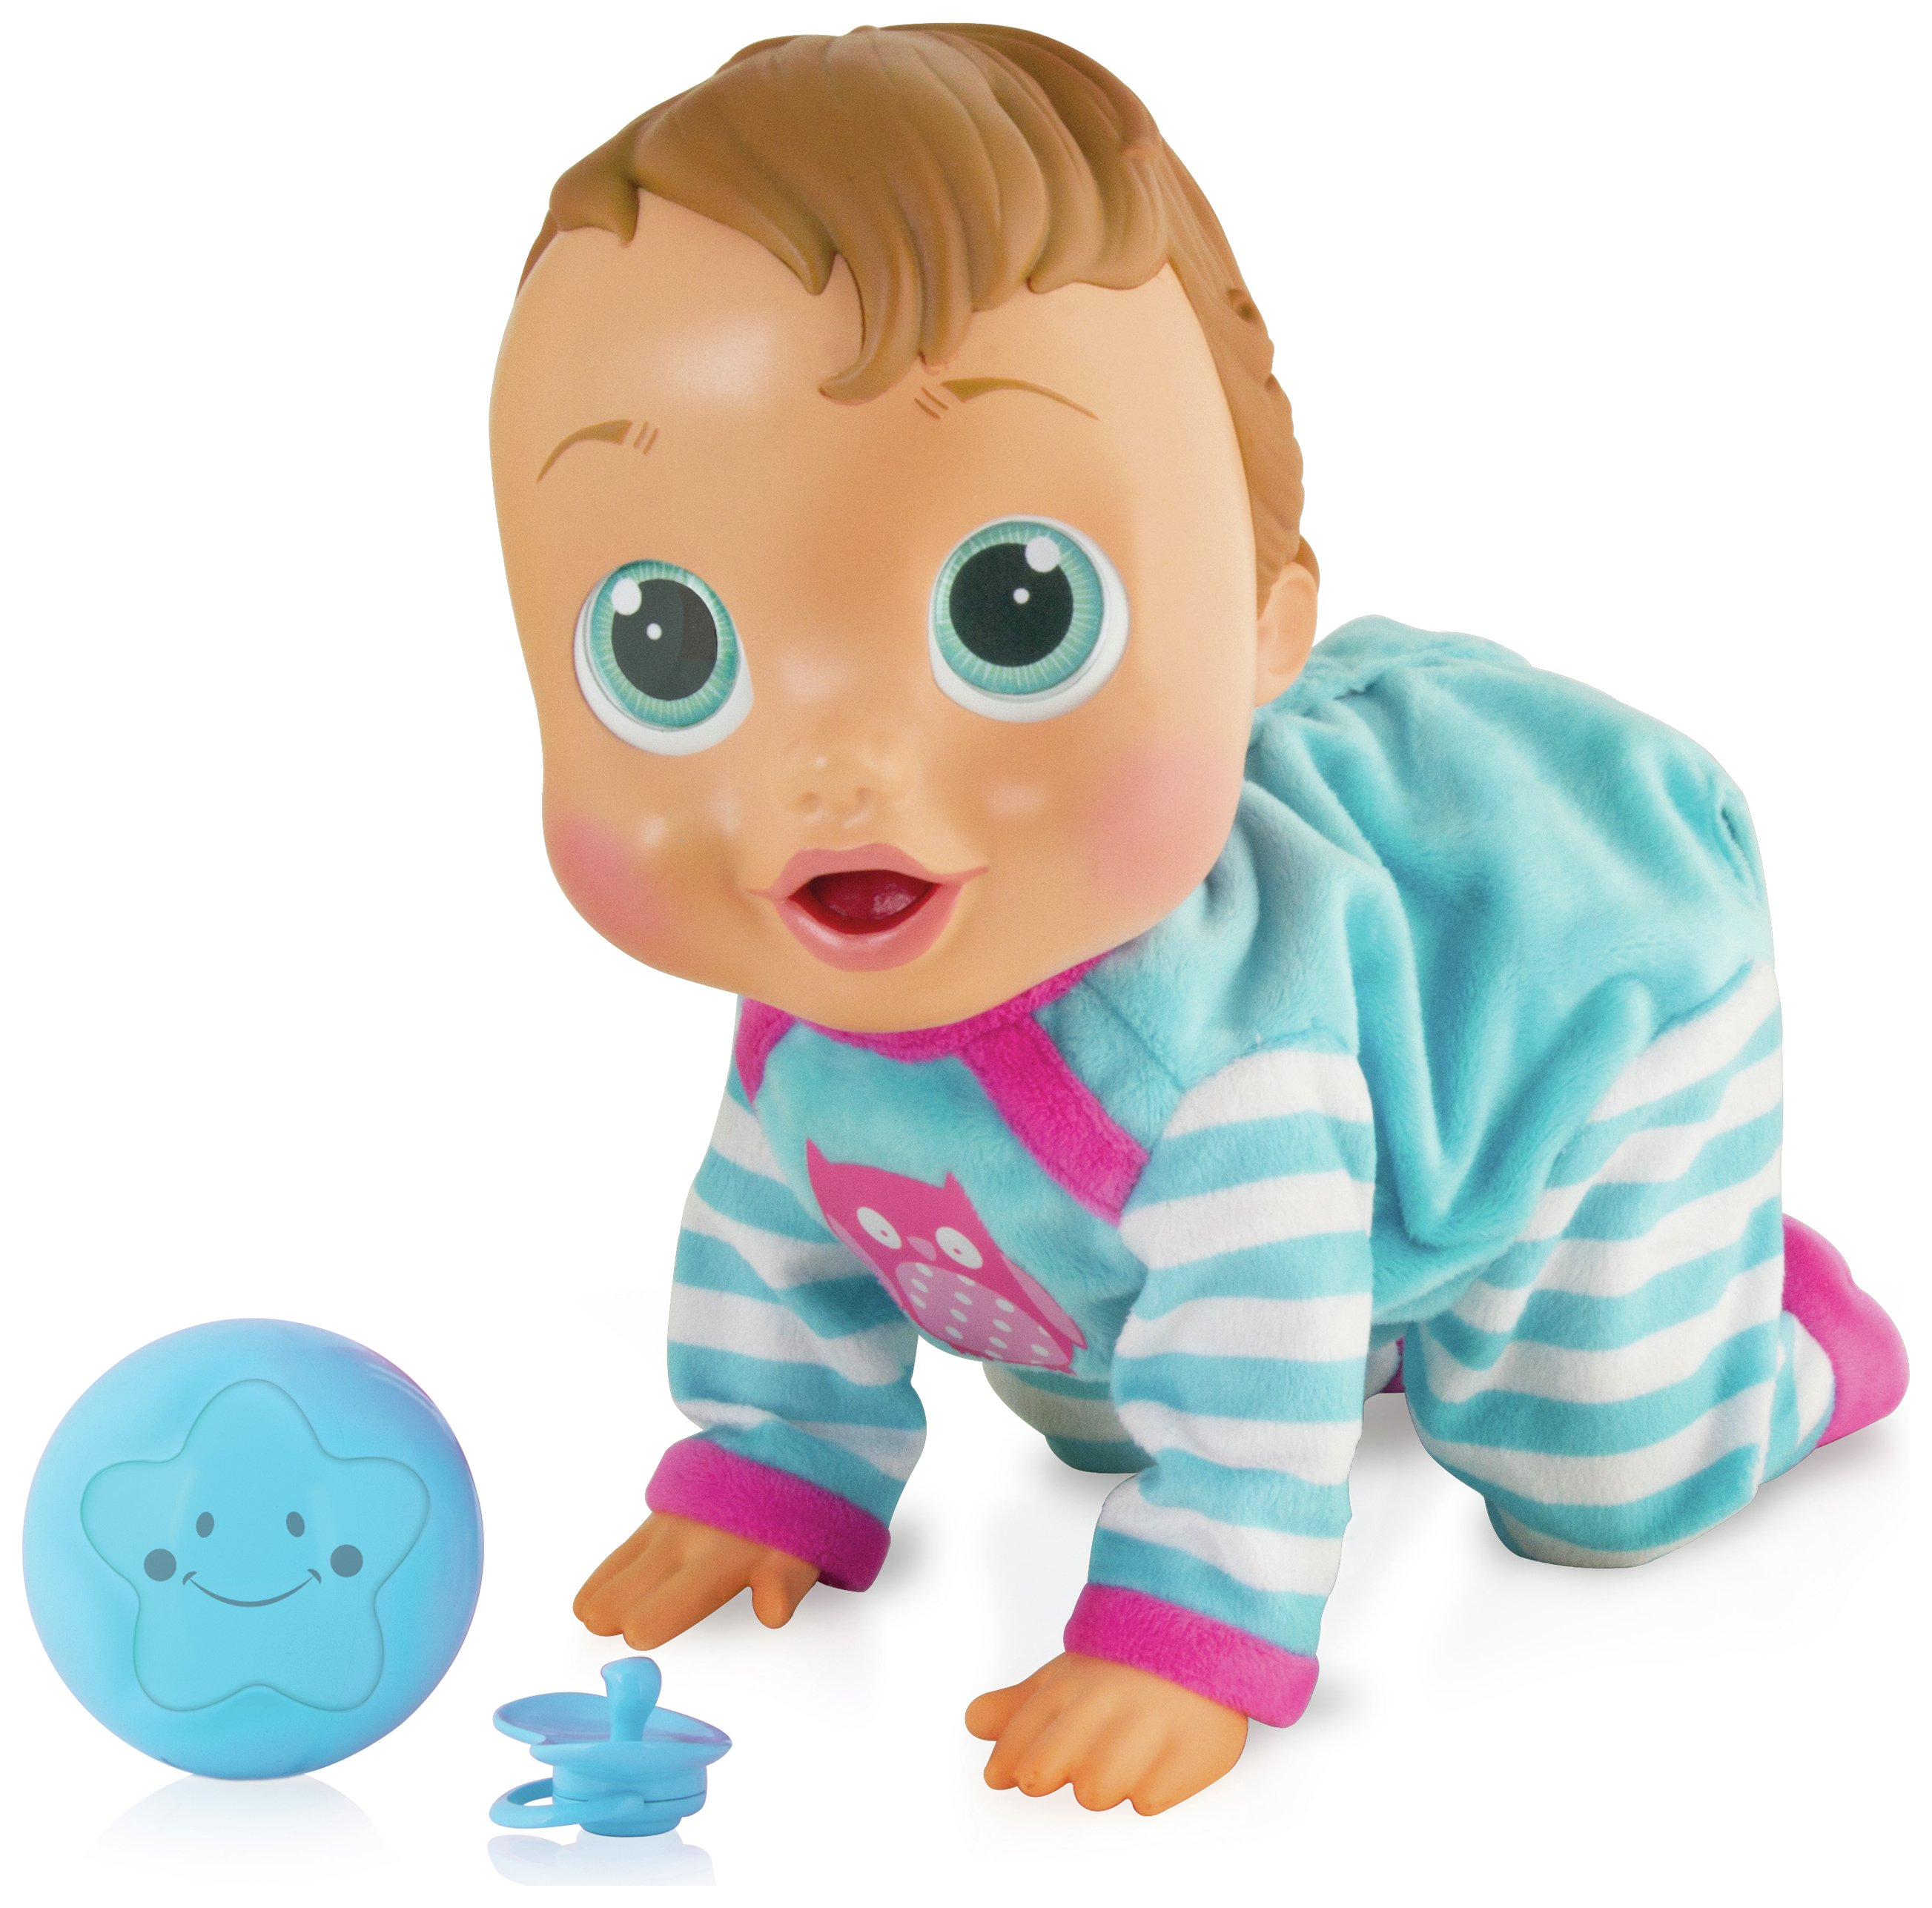 Image of Baby Wow Doll